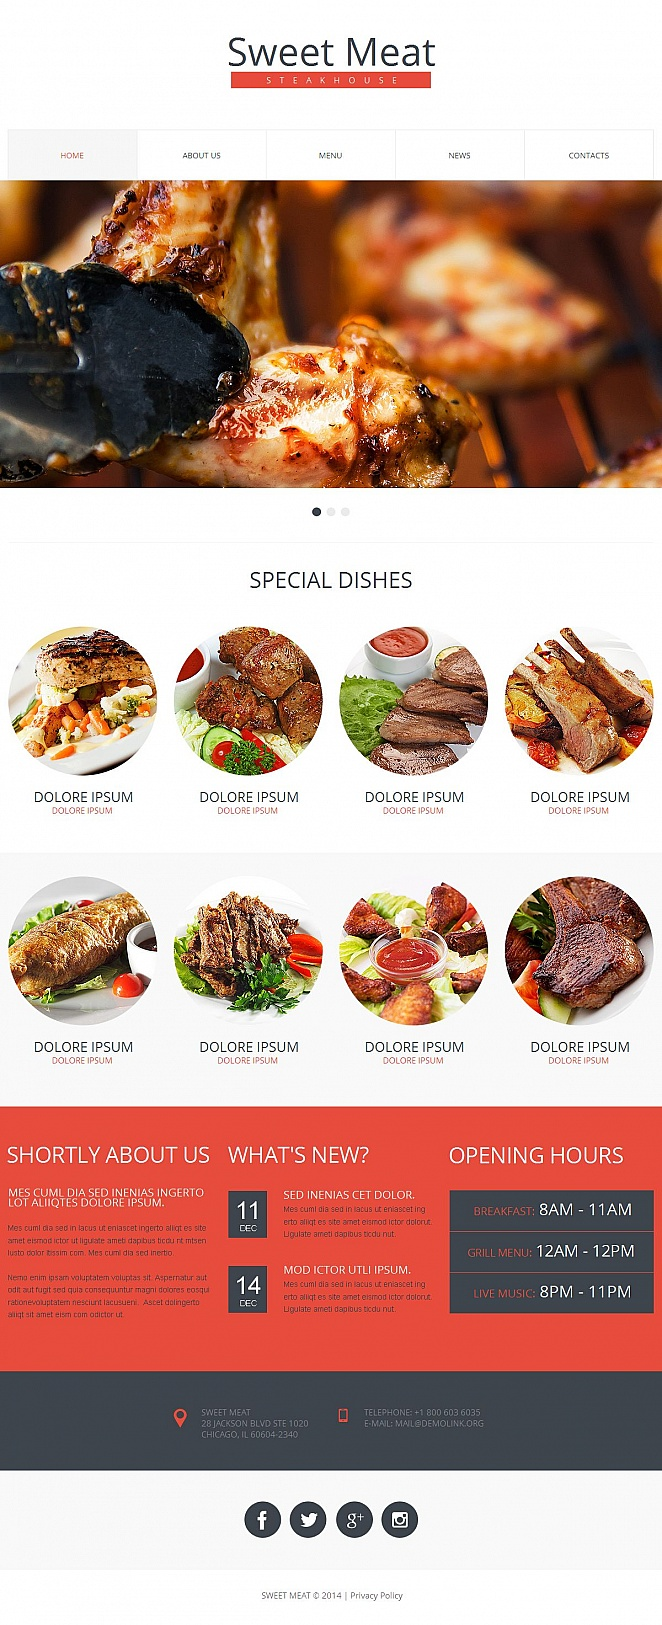 Steakhouse Web Template with Image Slider Above the Fold - image